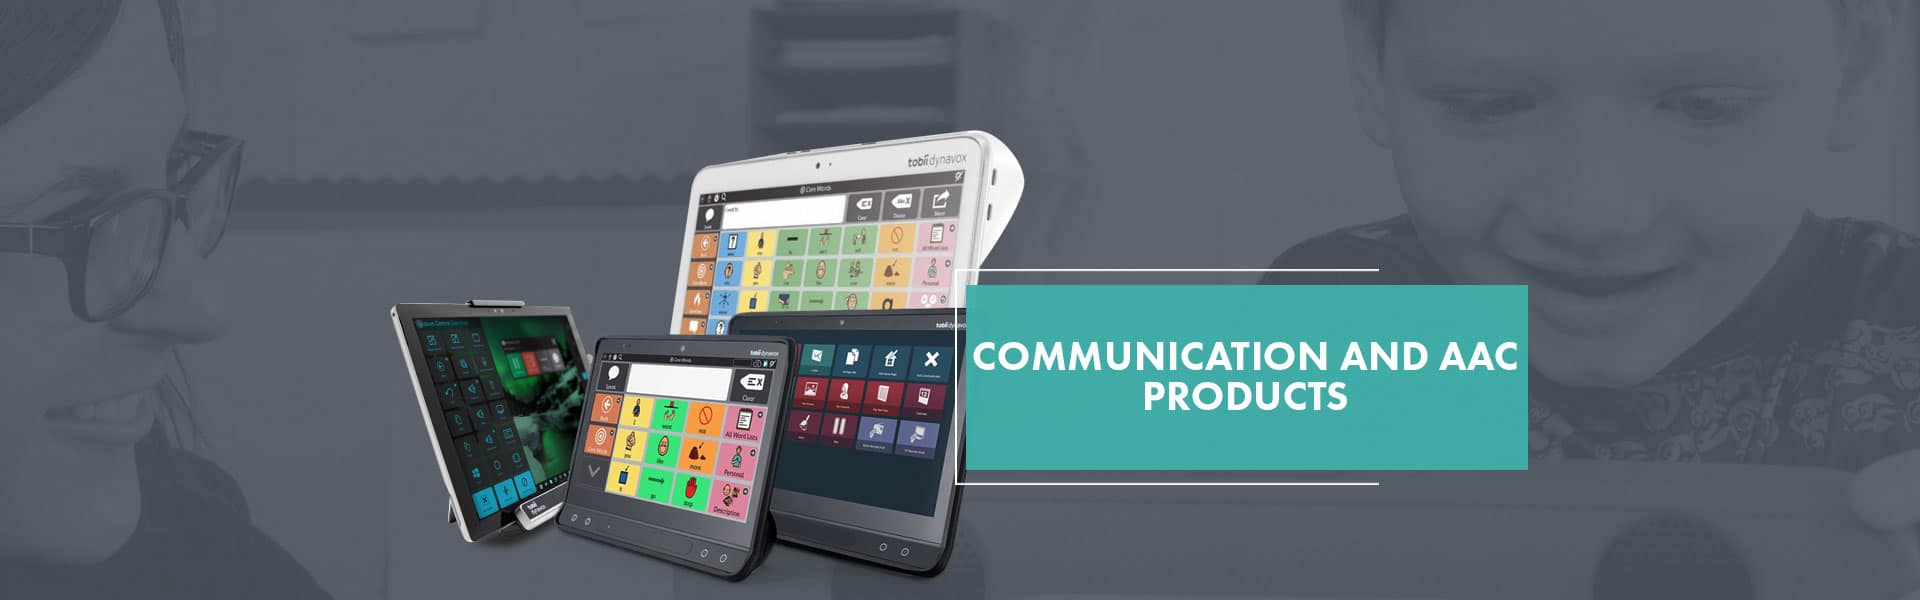 Communication and AAC